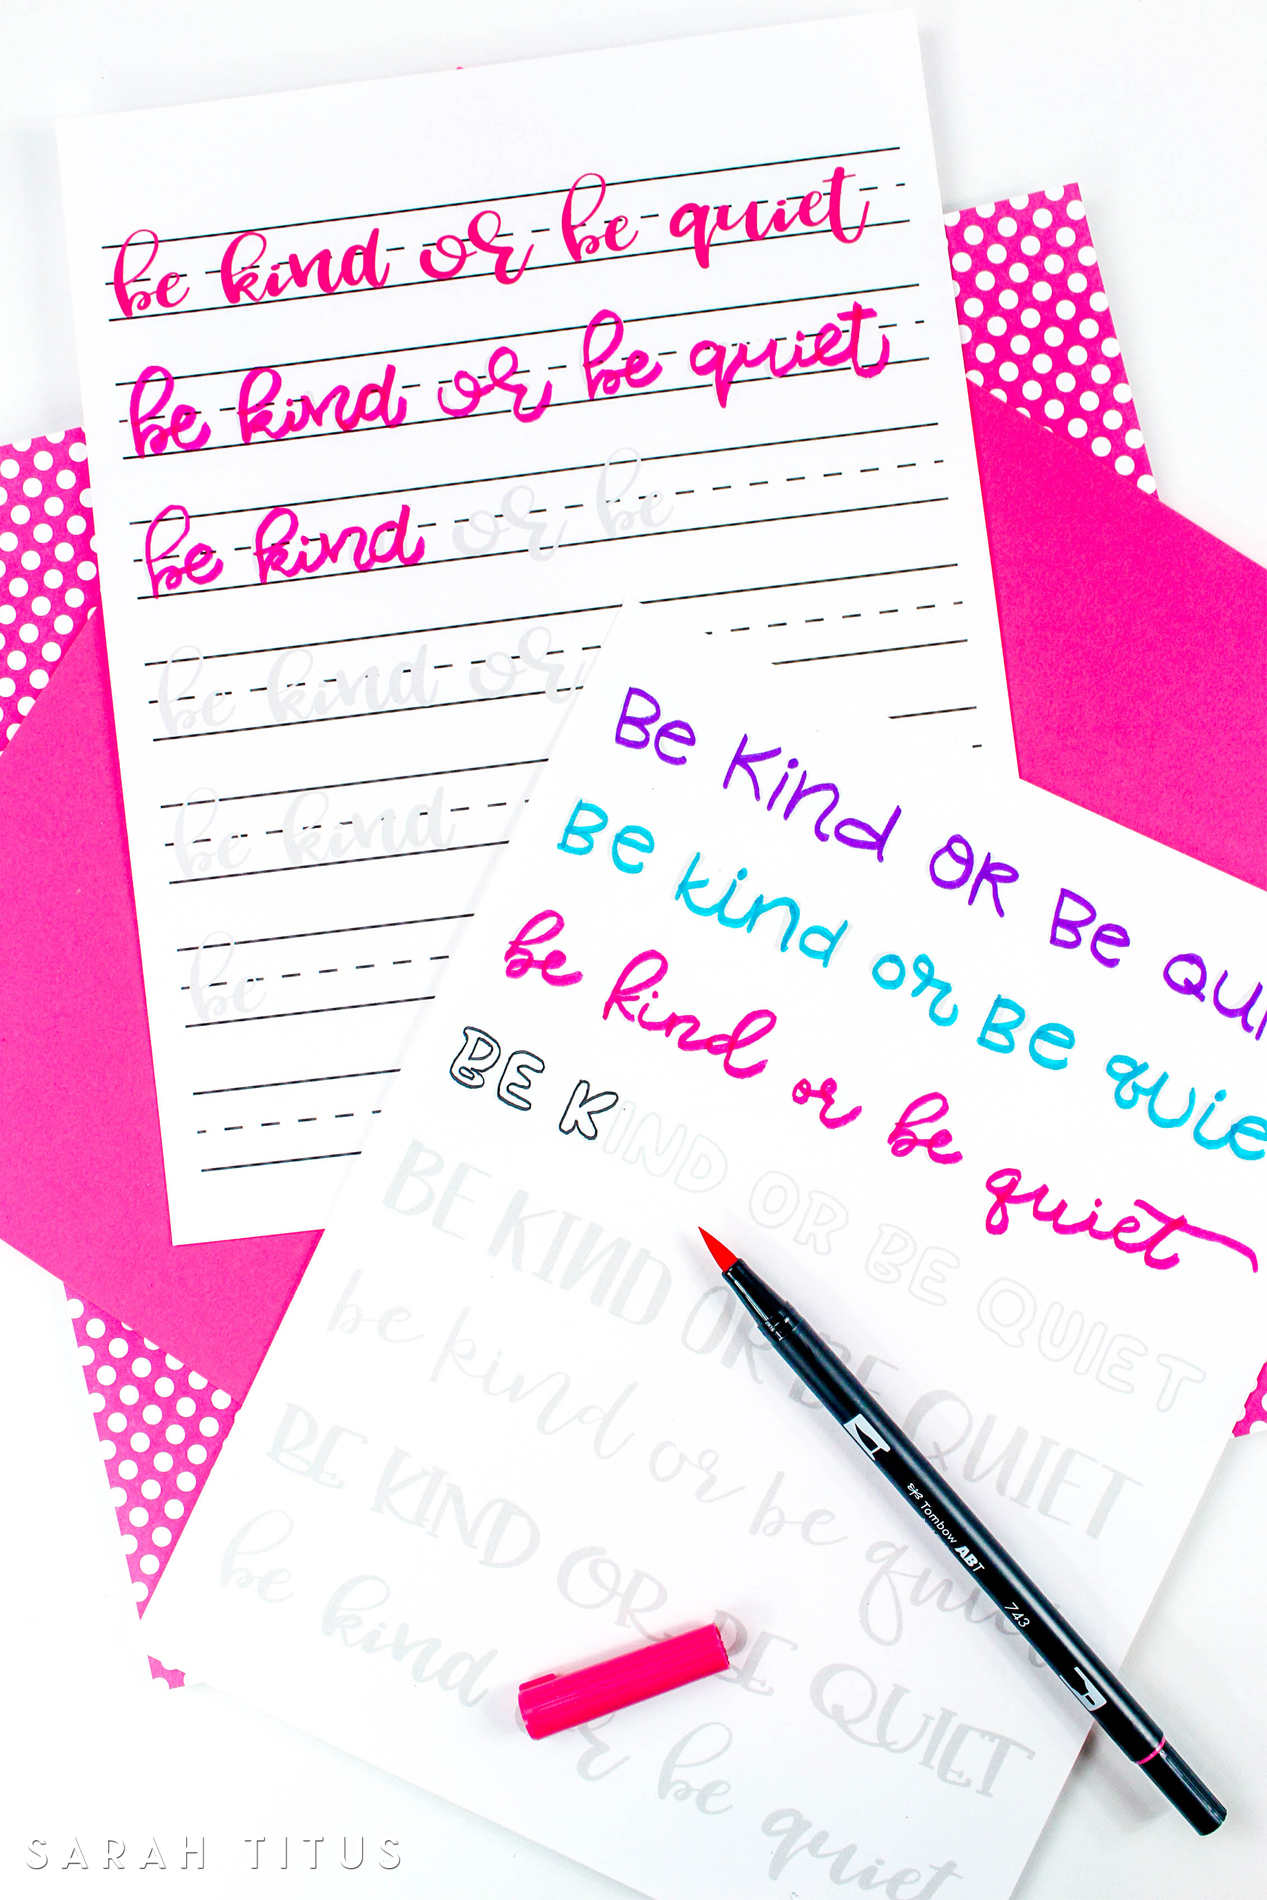 Be Kind Or Be Quiet Hand Lettering Worksheets  Sarah Titus inside Sarah Titus Printables